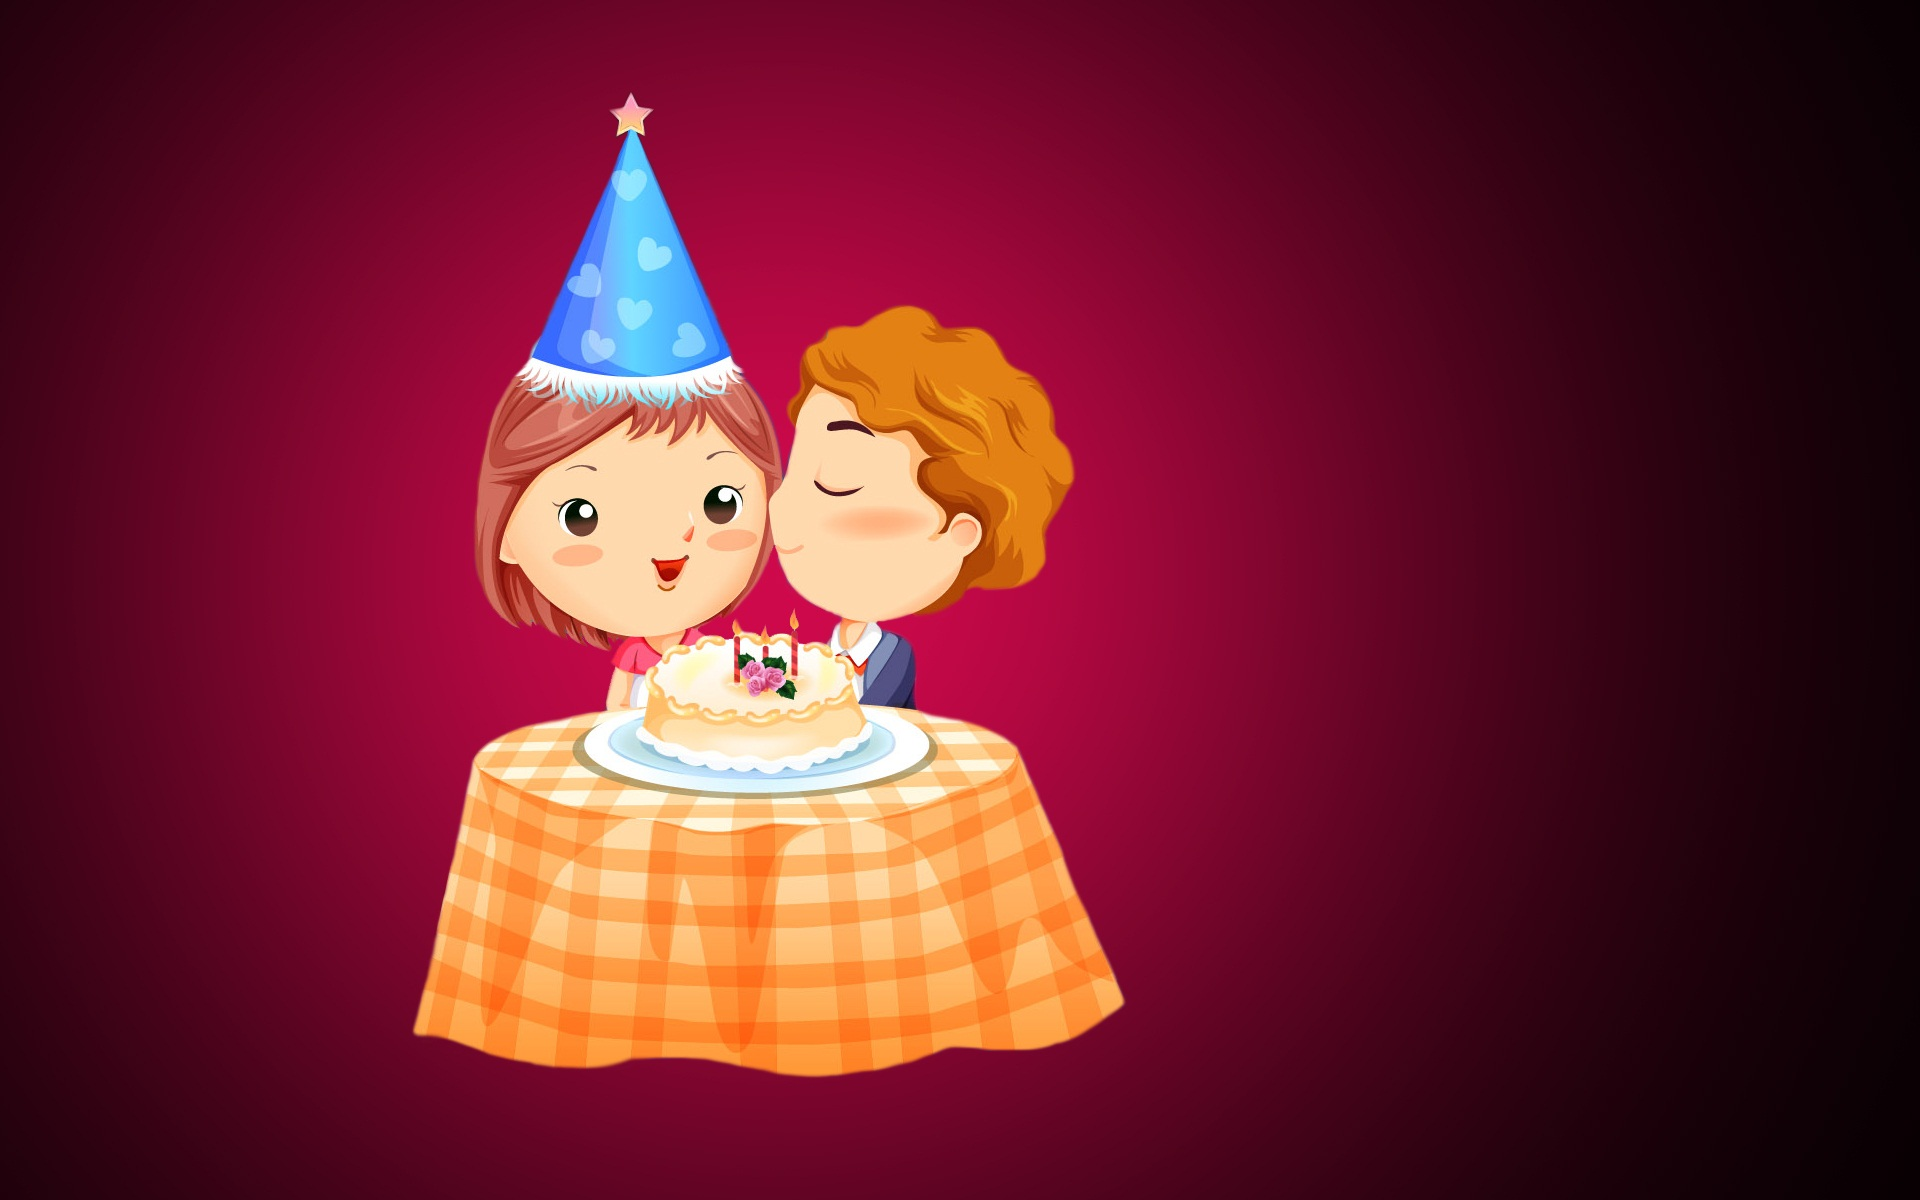 Download Images Of Anniversary Cake : Happy Anniversary Images Wallpapers Download - Hindi Shayari